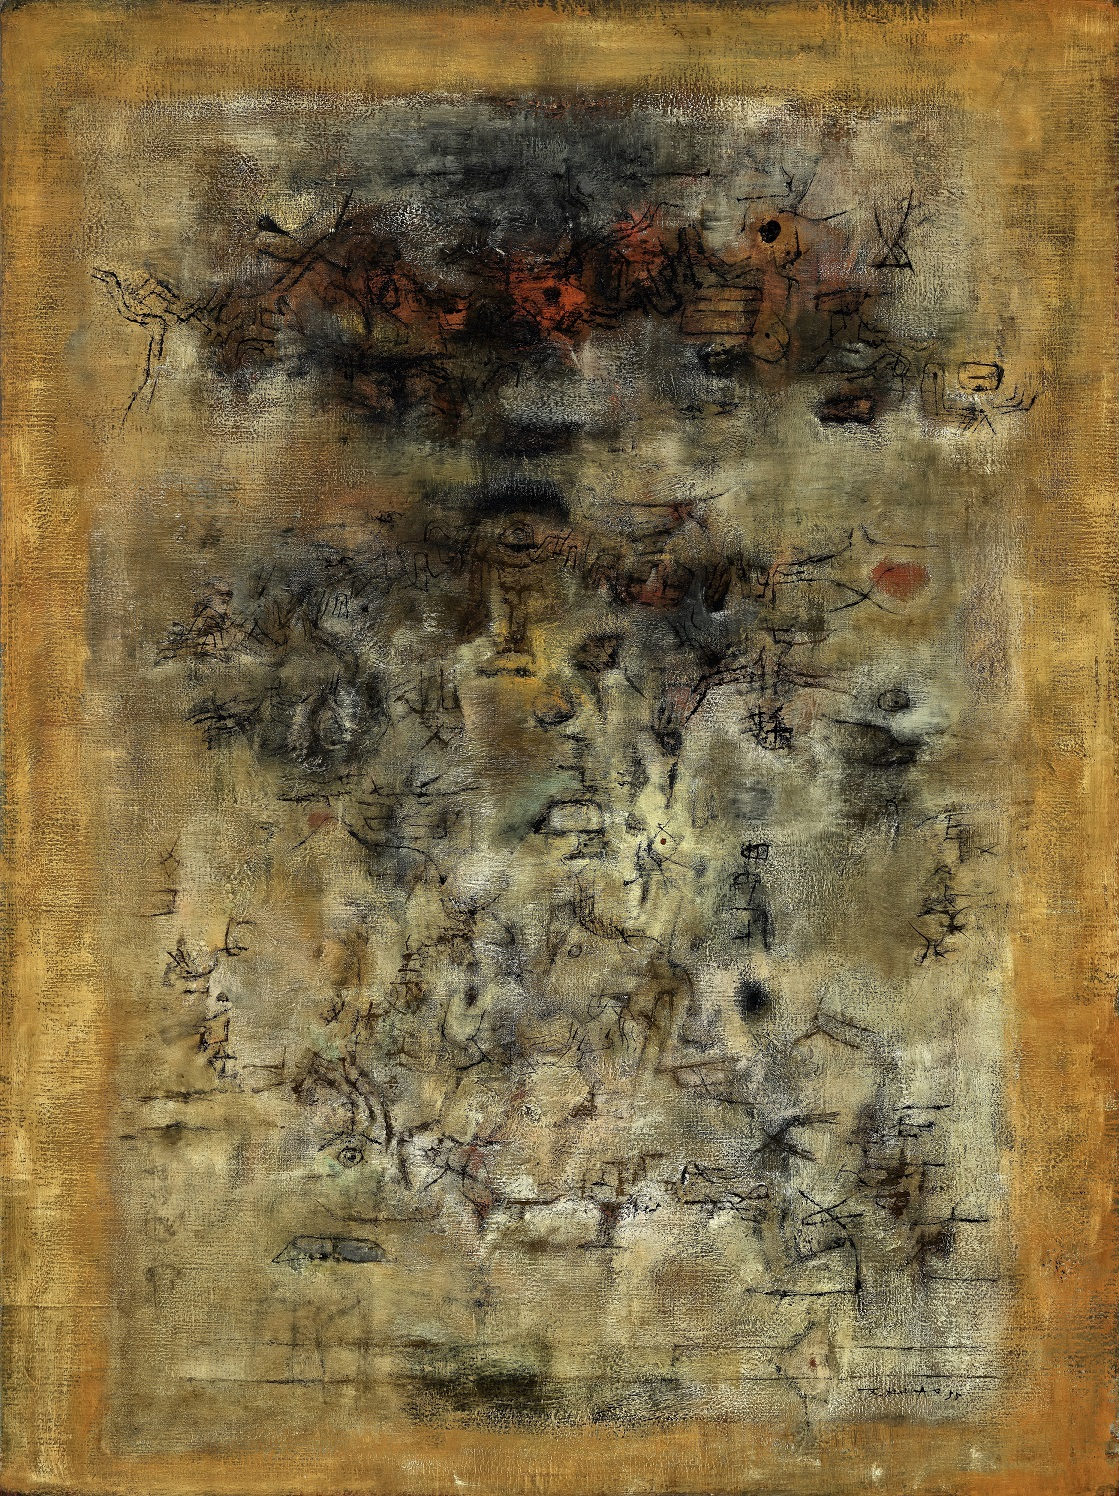 Zao Wou-Ki, 'Ailleurs', 1955, oil on canvas, 130 x 97cm. Image © Zao Wou-Ki - ProLitteris, Zurich.